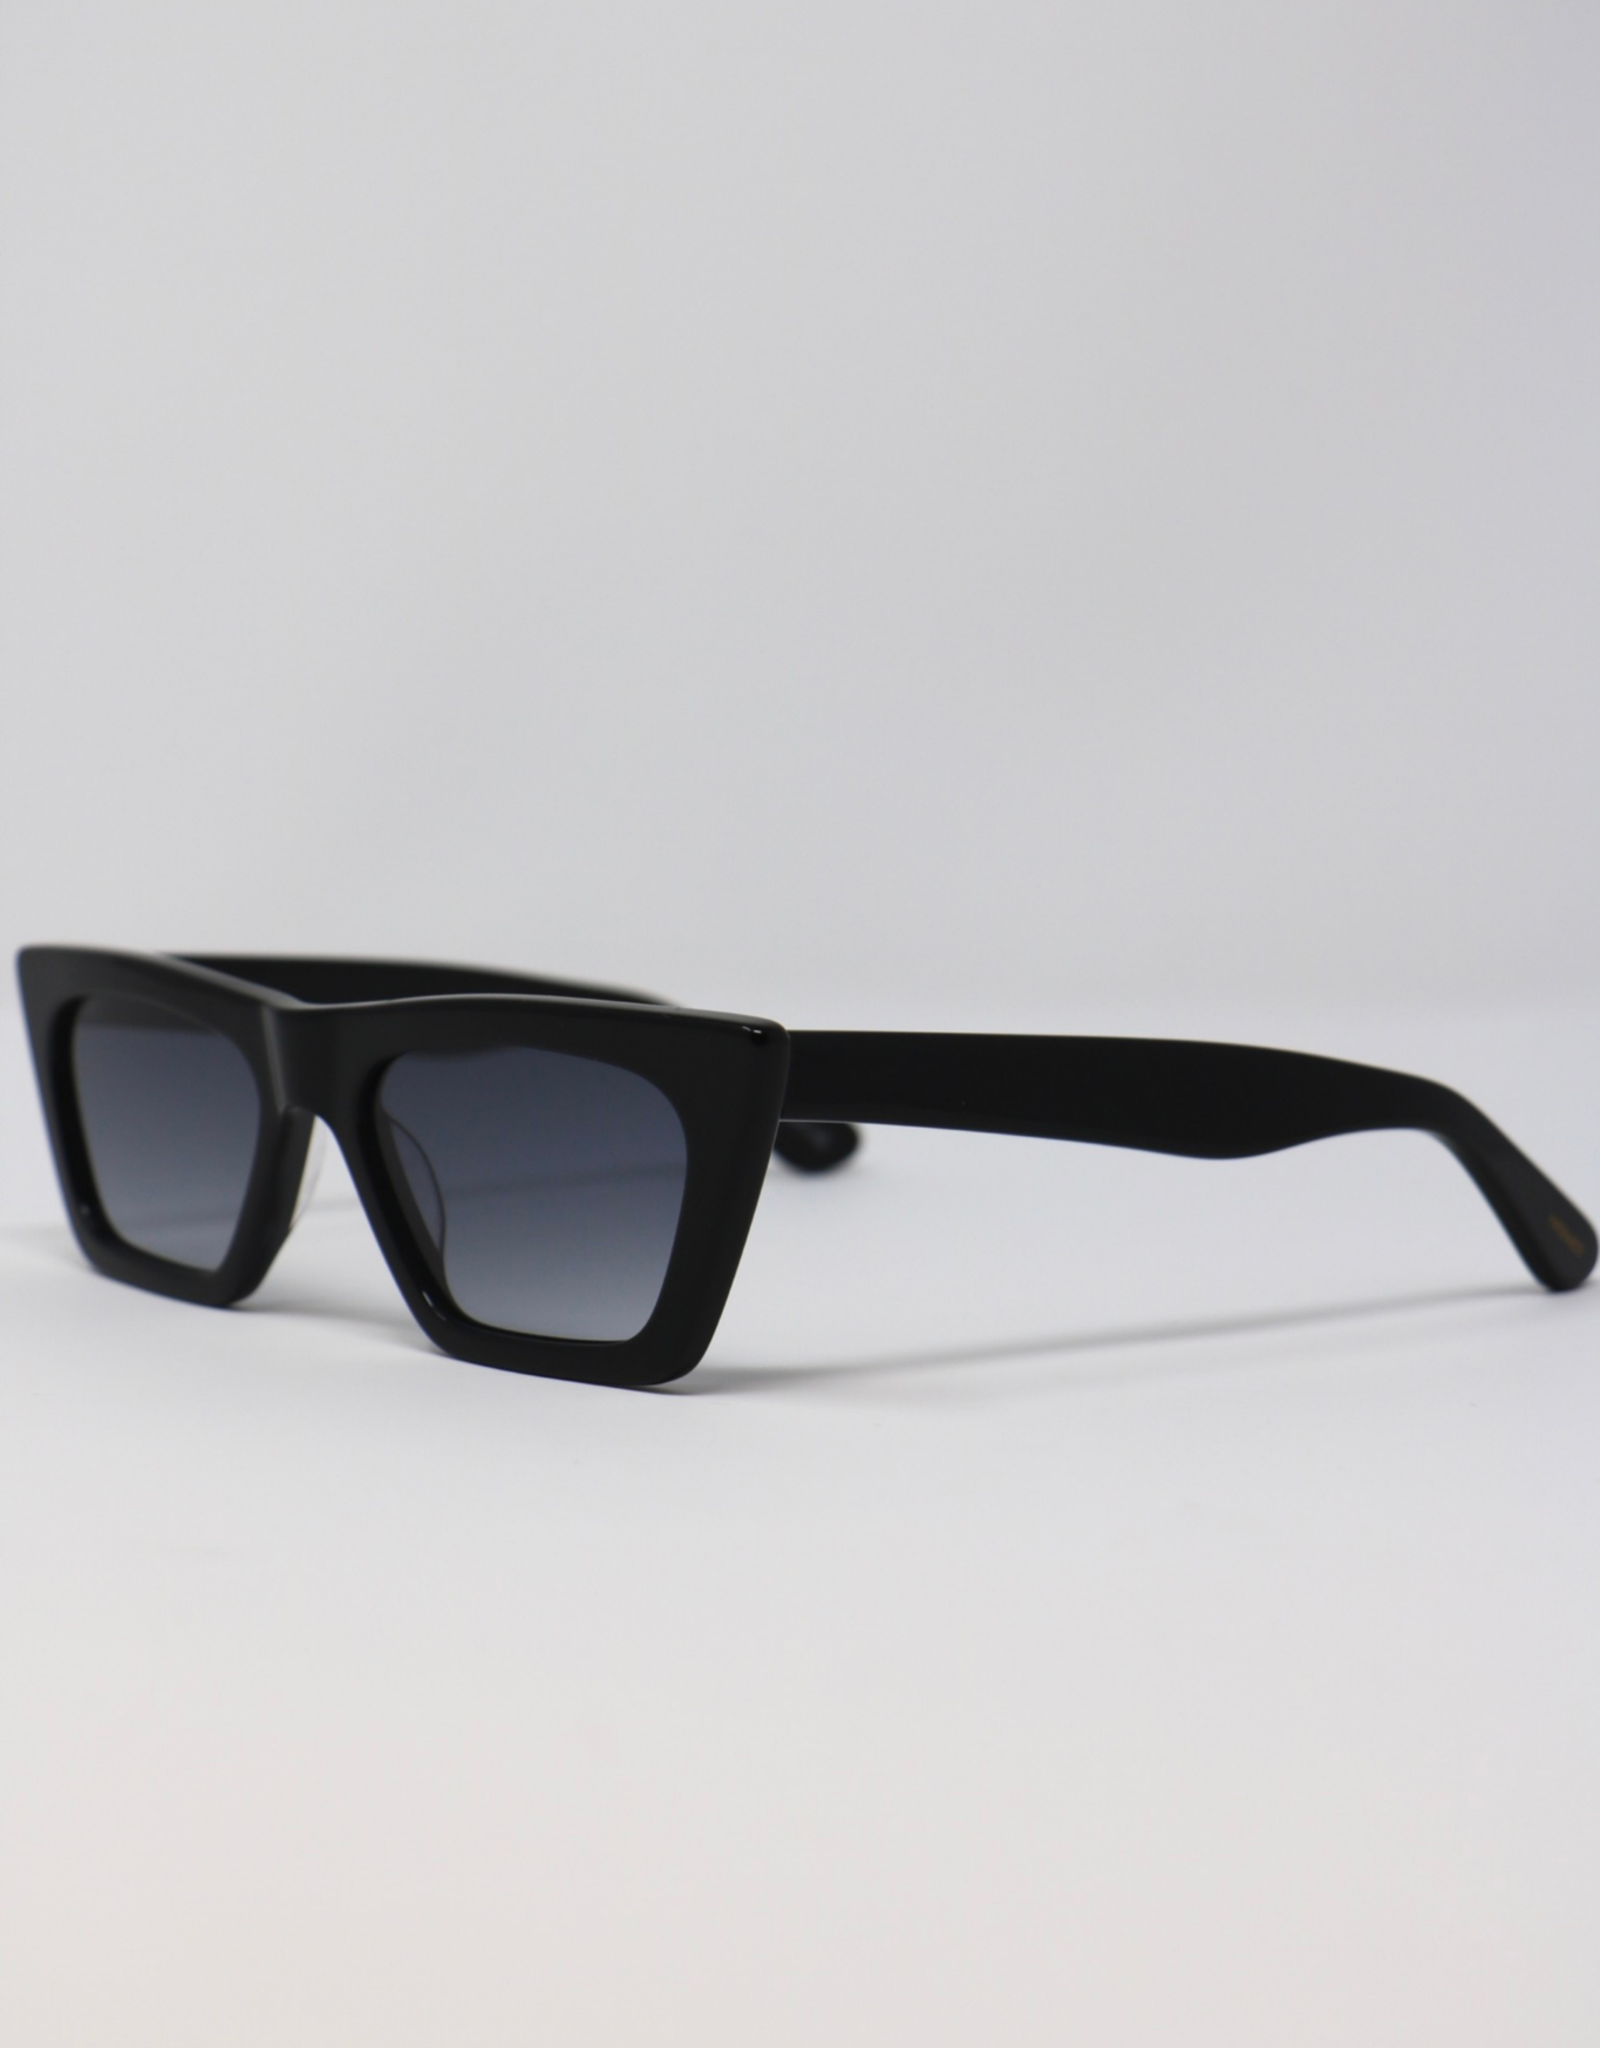 Priv Priv Kaya Black Sunglasses